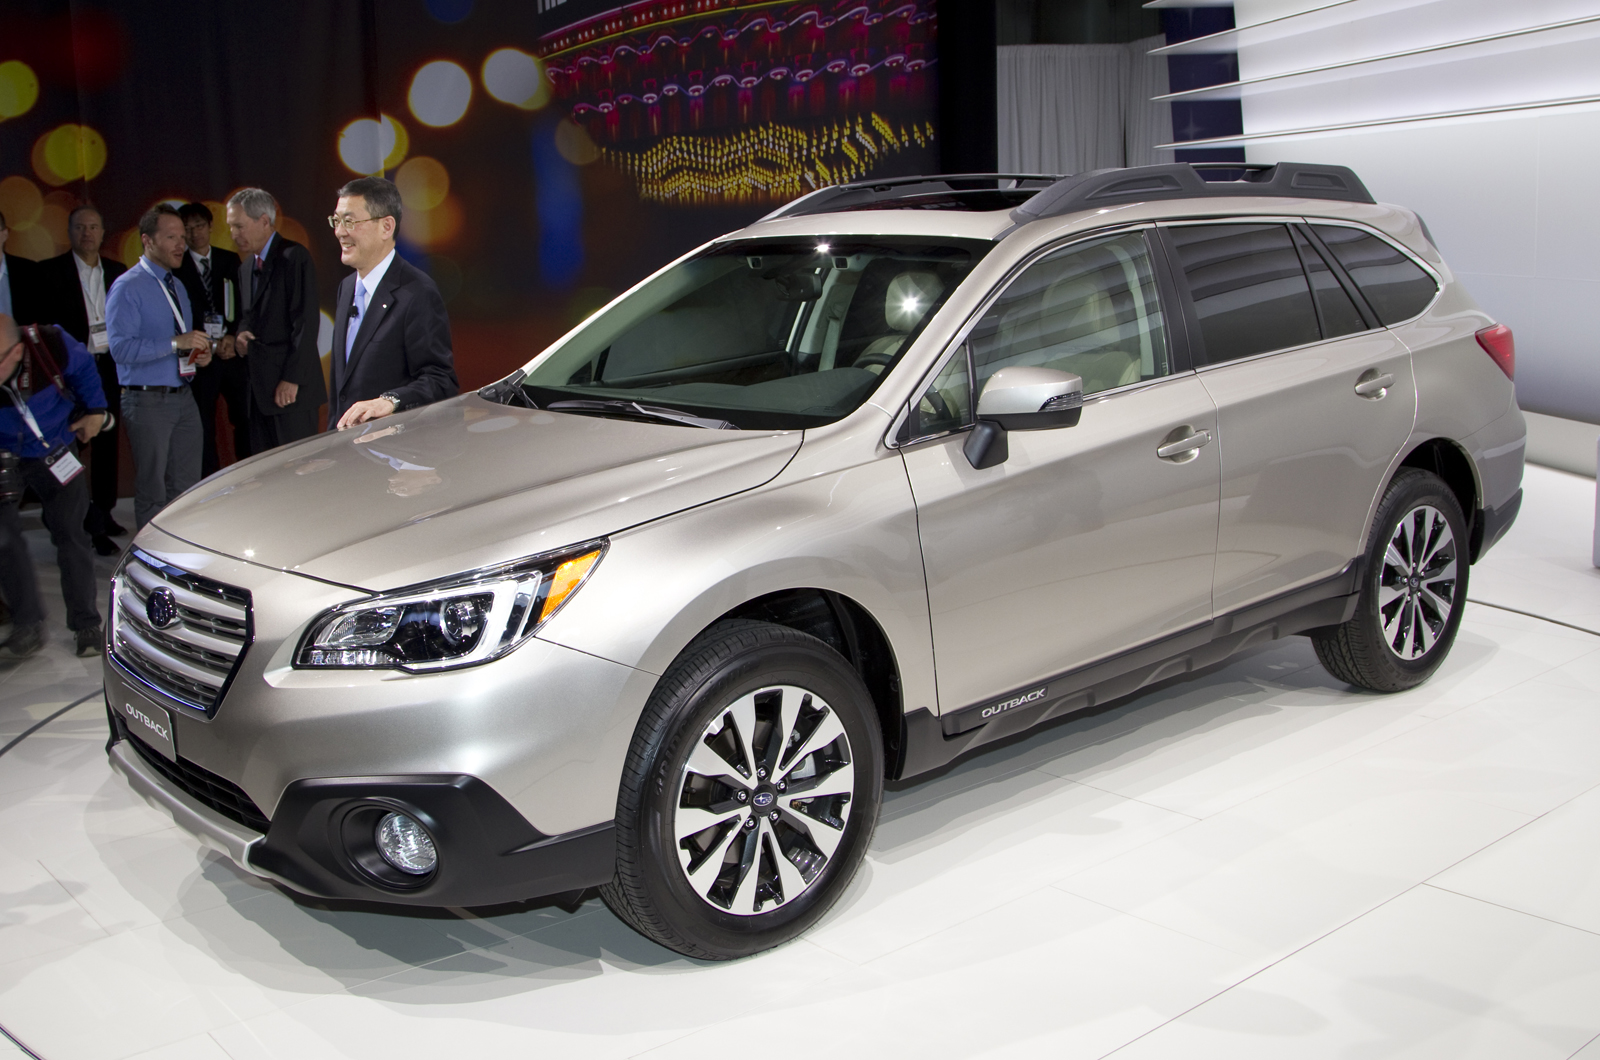 new york 2014 new subaru outback to be shown autocar india. Black Bedroom Furniture Sets. Home Design Ideas